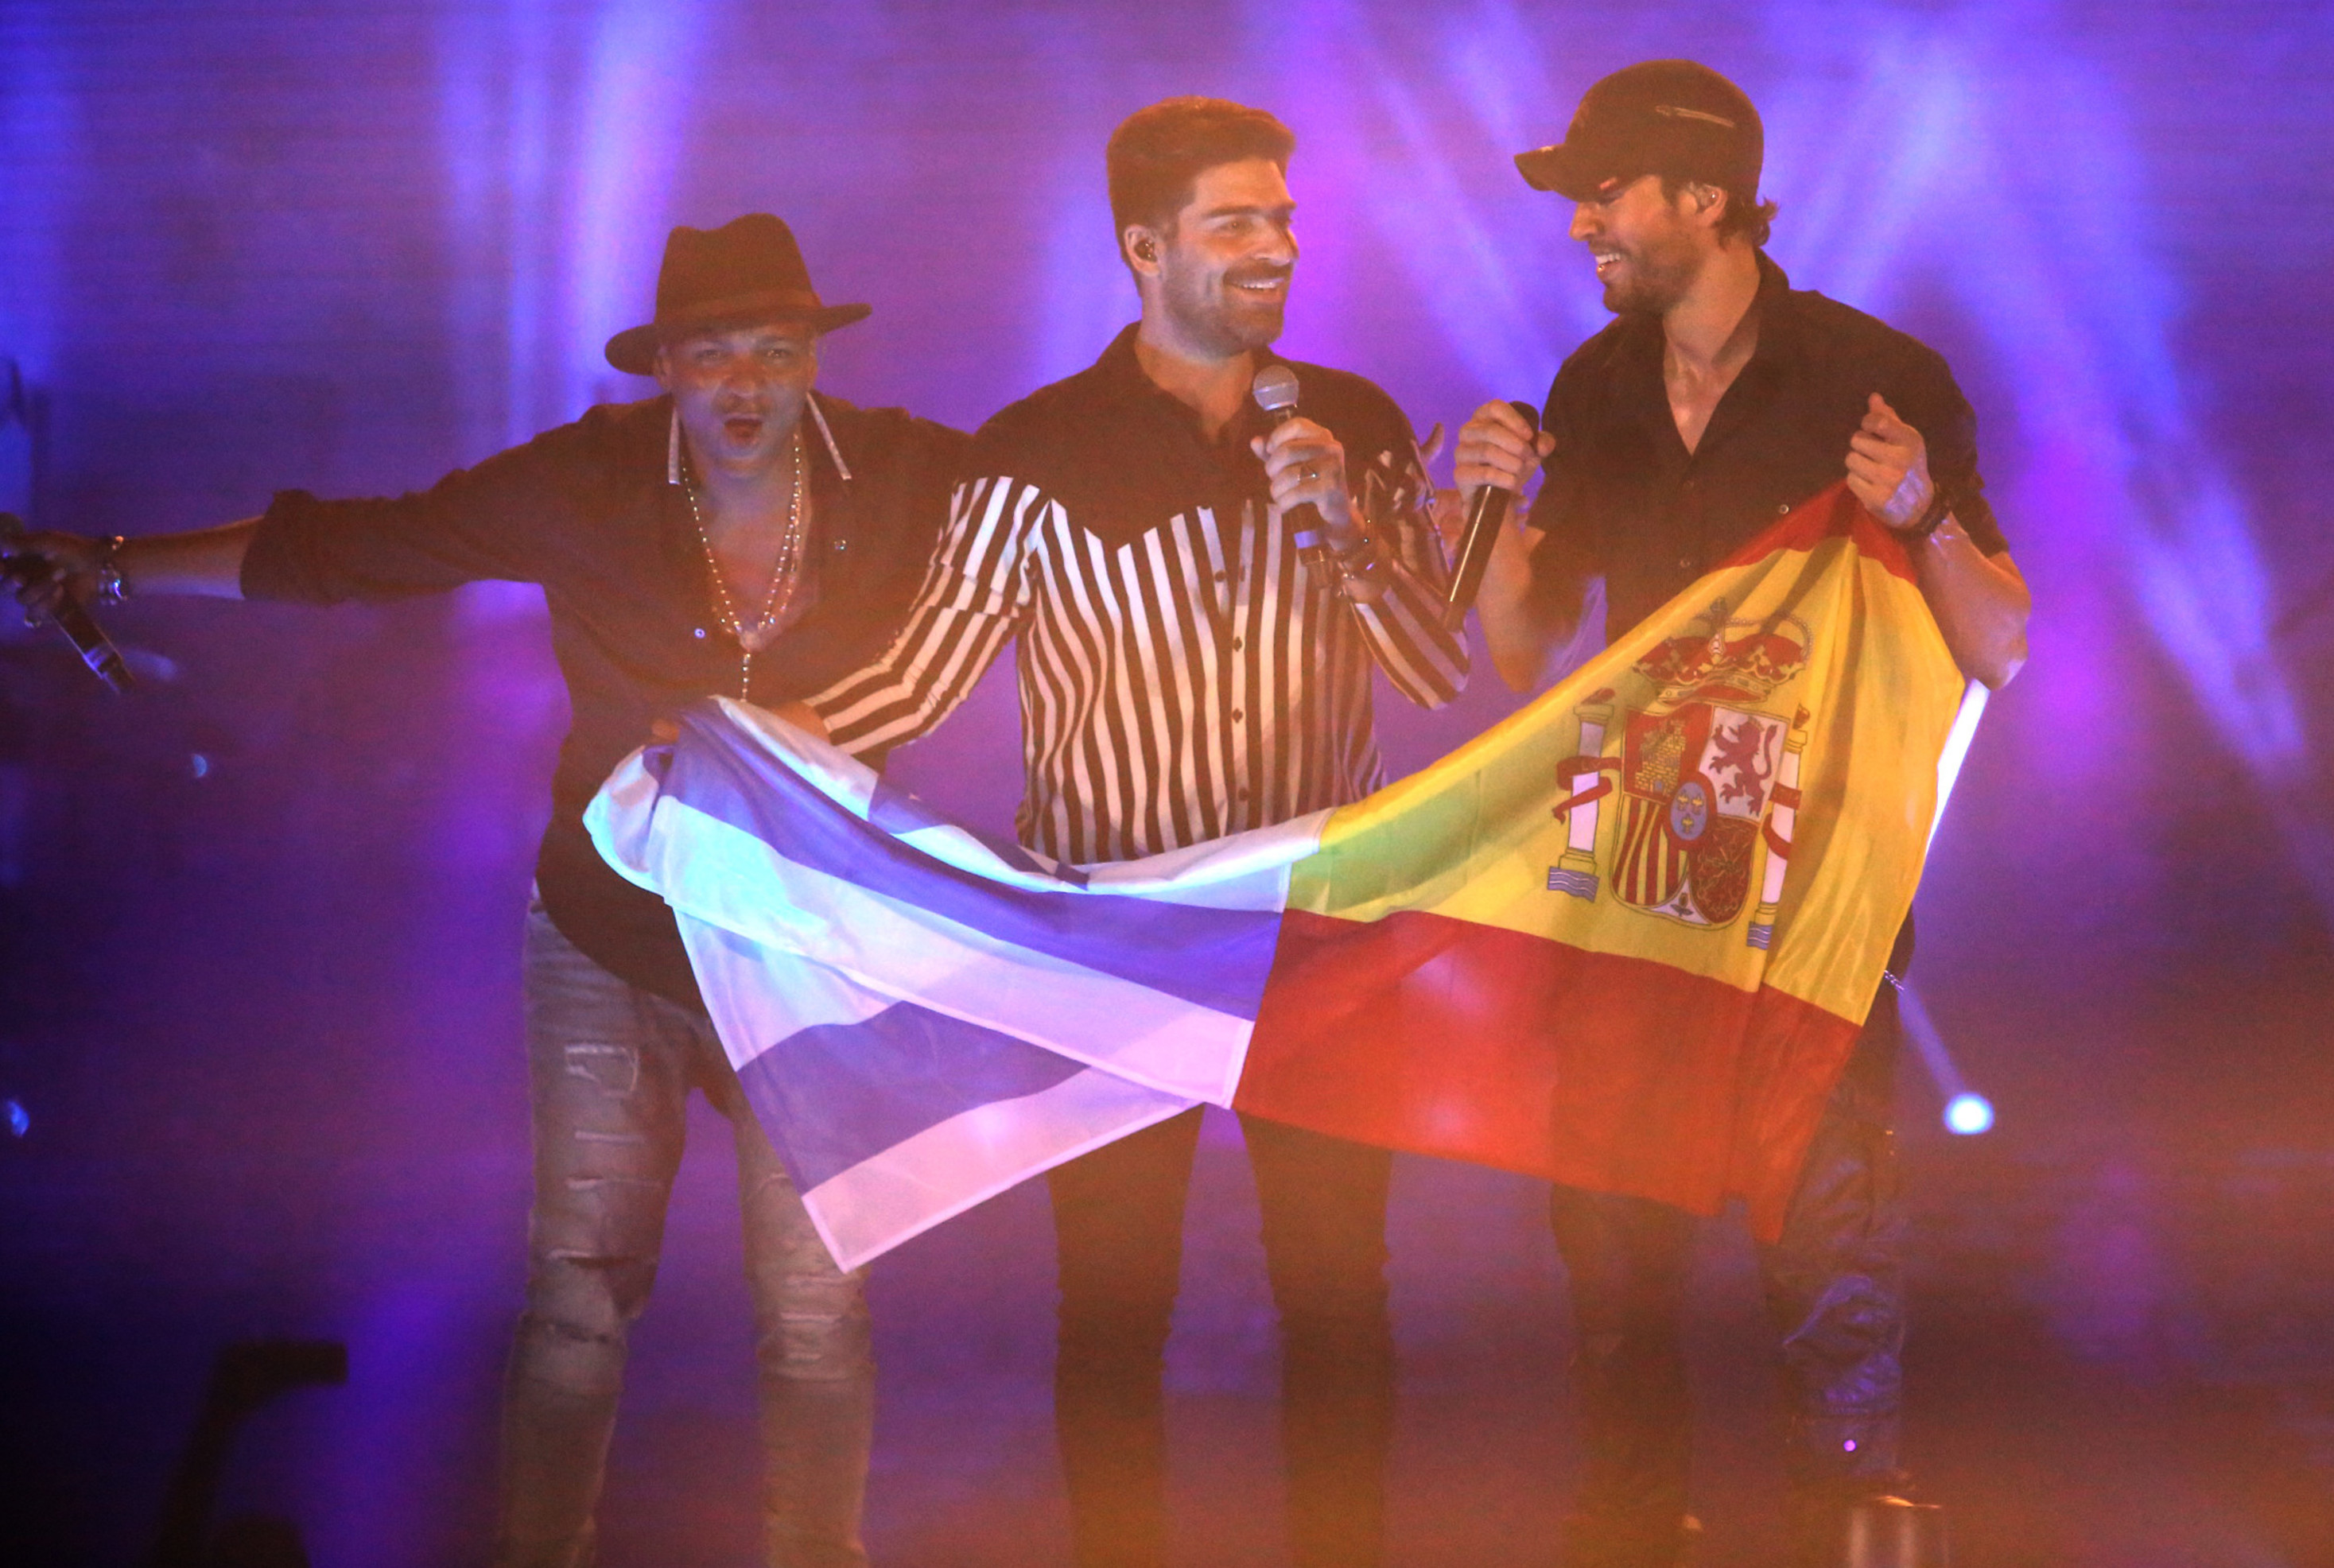 Enrique Iglesias is interested in not only girls, but also guys 06/21/2011 38